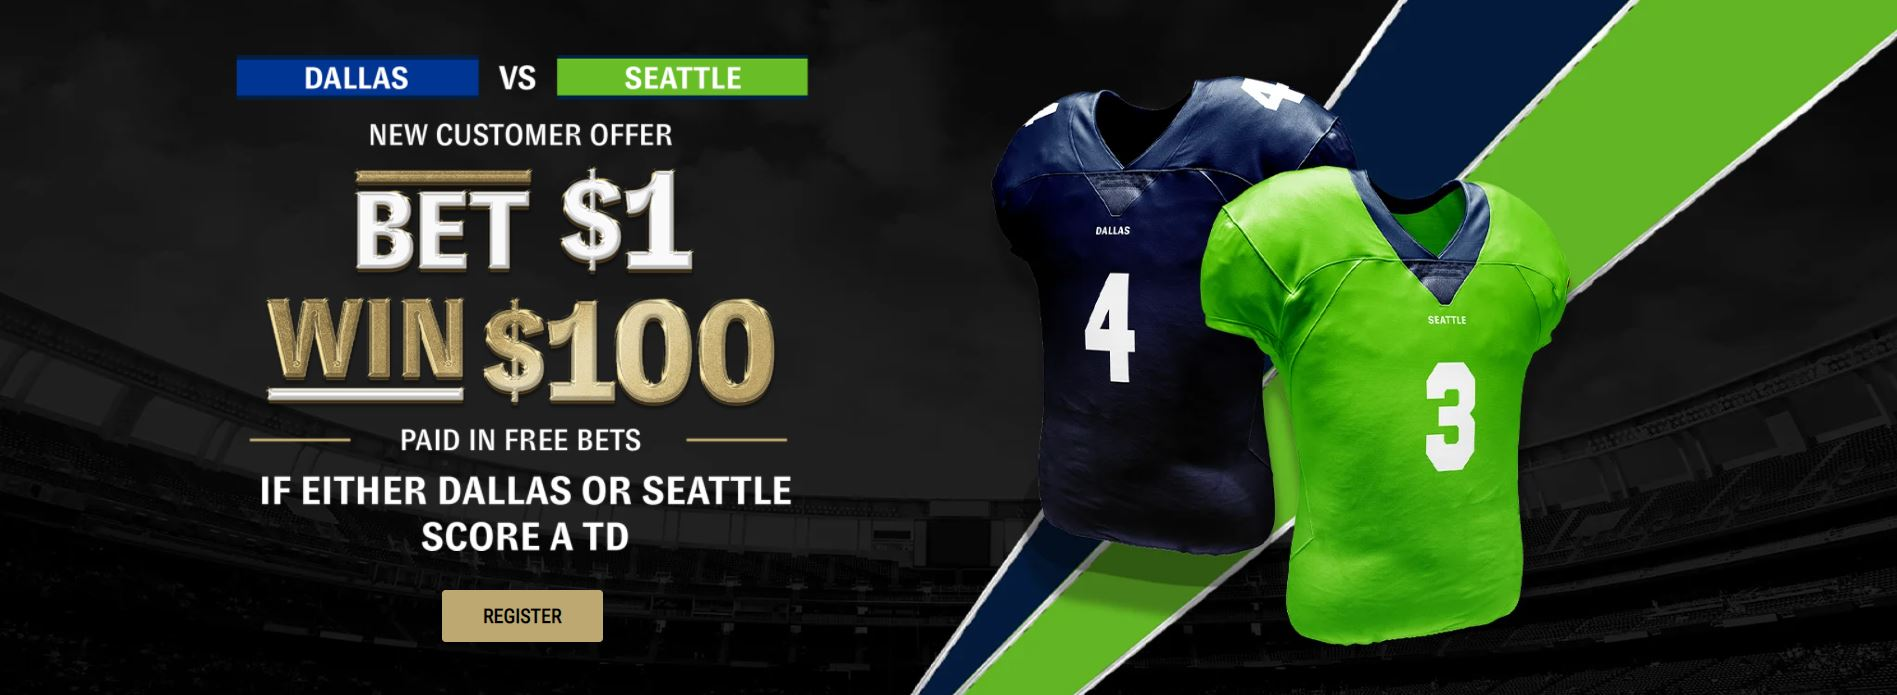 Bet $1 win $100 new customers offer banner for the Dallas vs Seattle NFL game